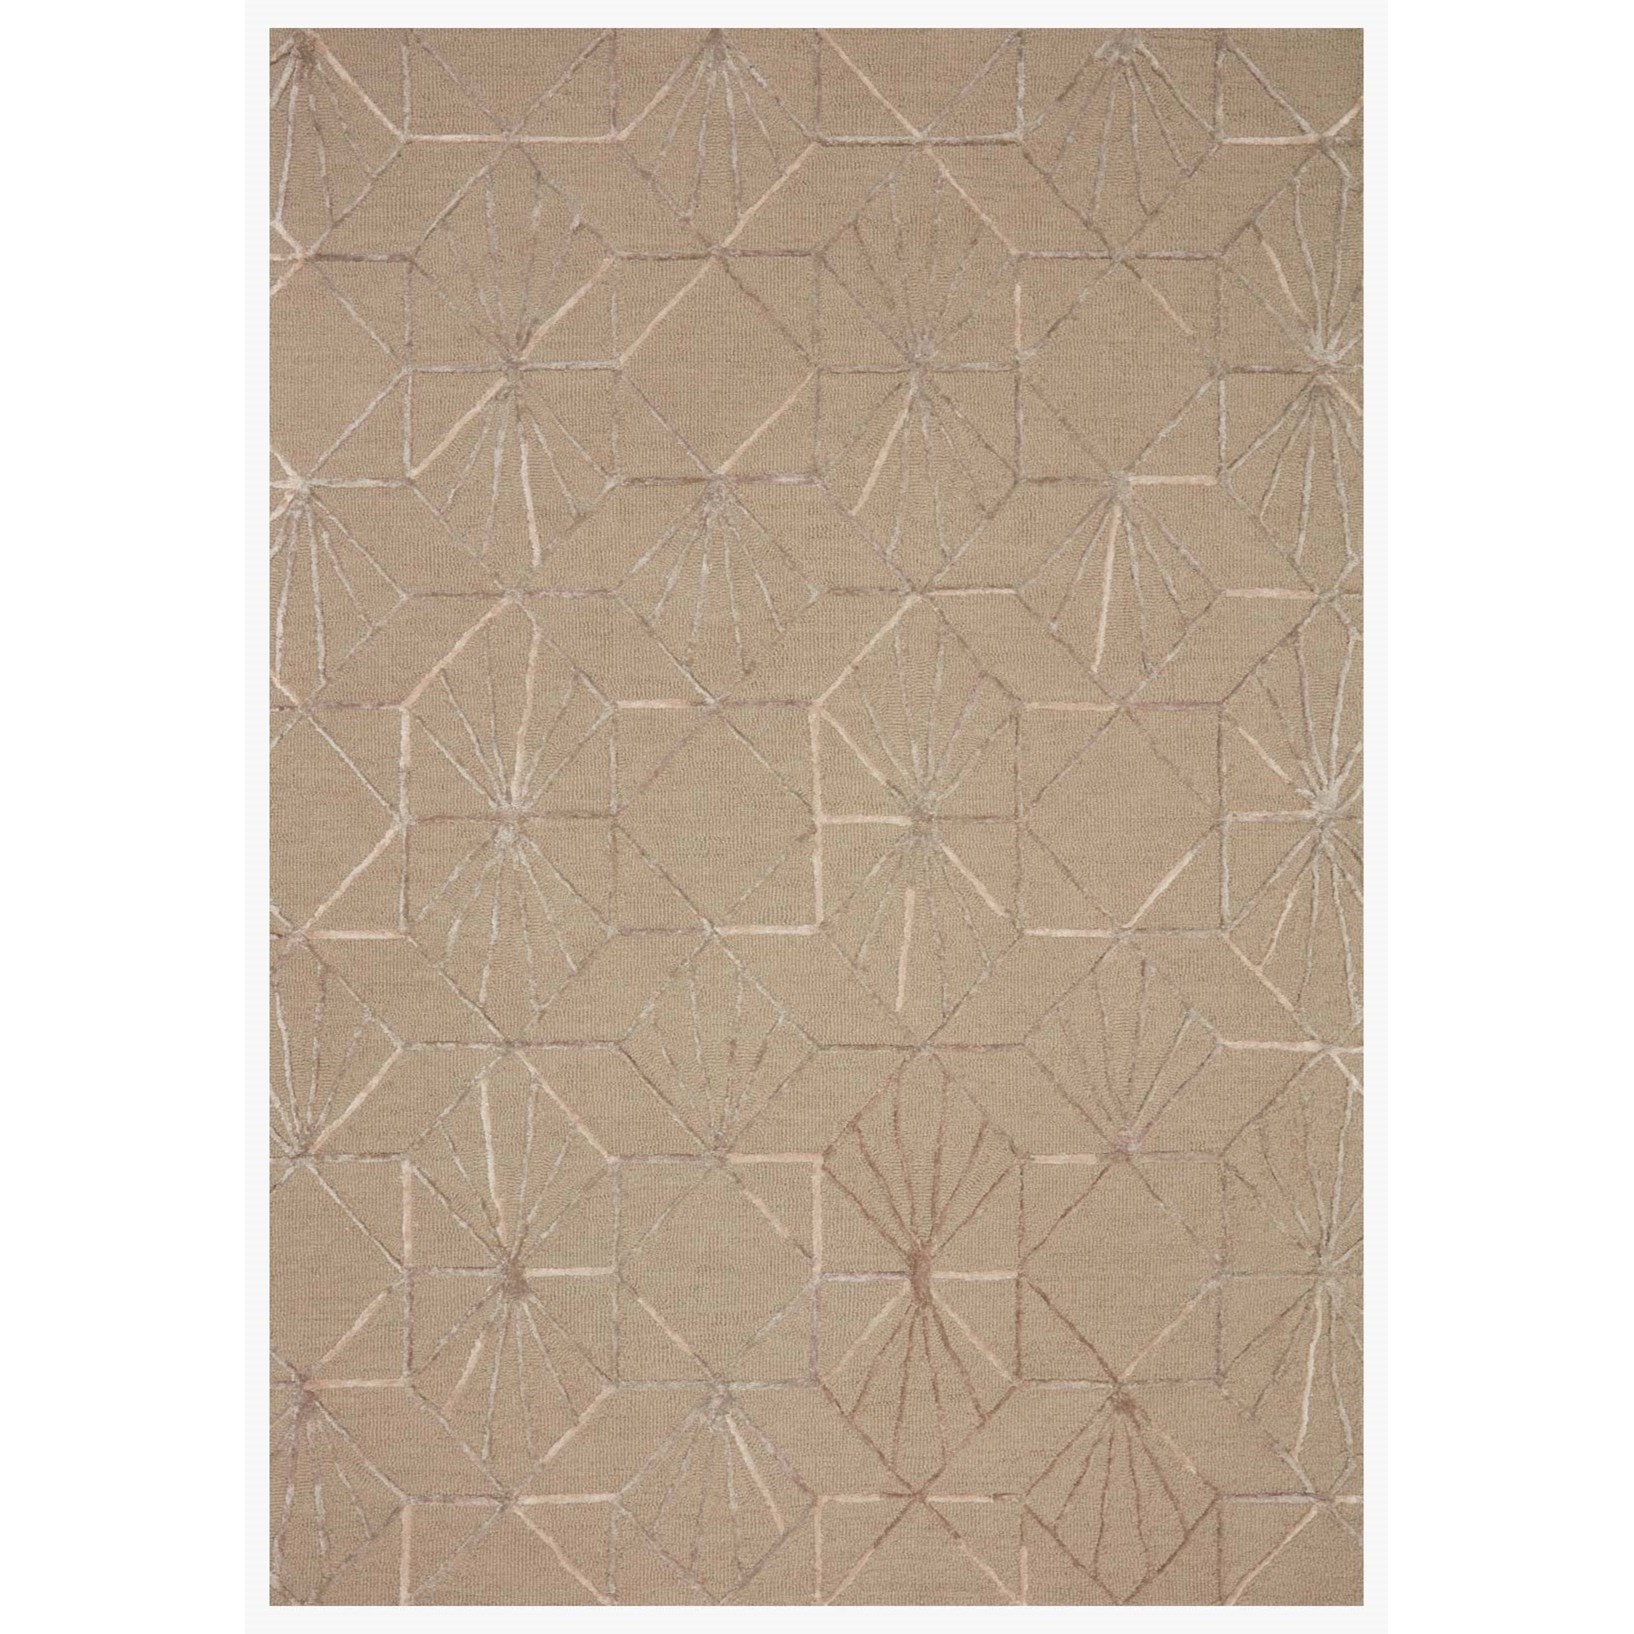 """Verve 5'0"""" x 7'6"""" Sand / Blush Rug by Loloi Rugs at Virginia Furniture Market"""